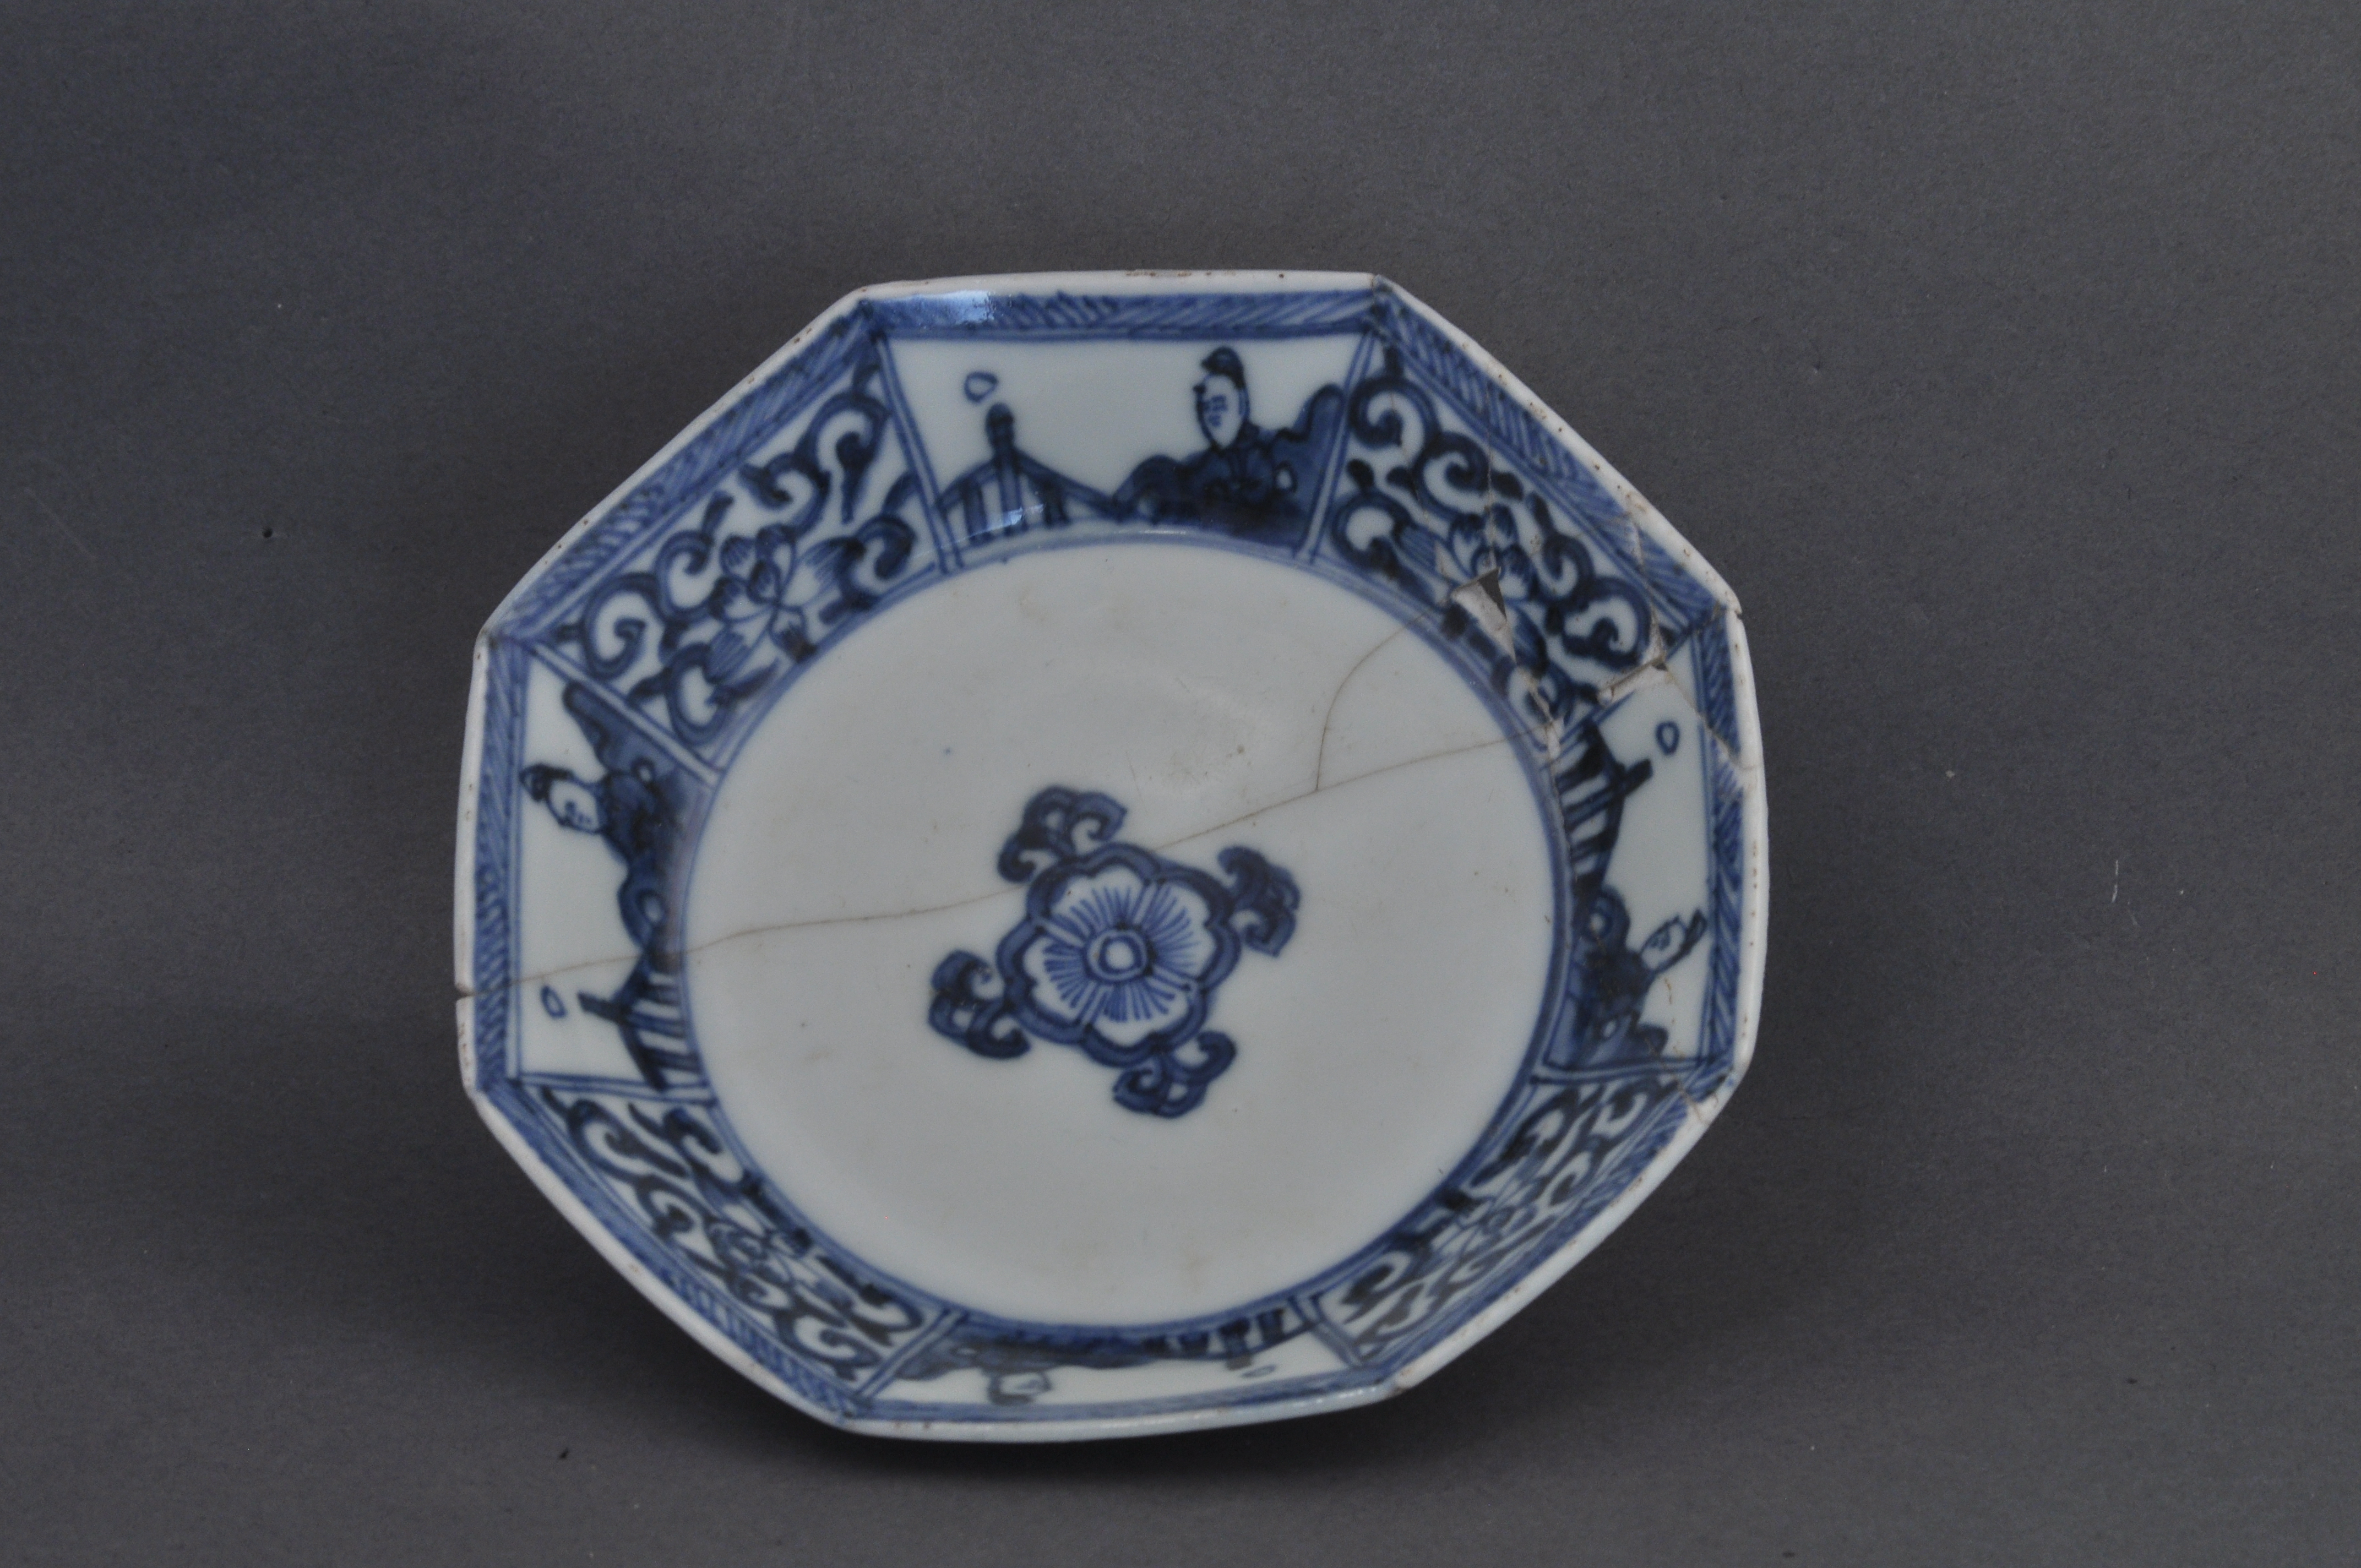 Jingdezhen, China, ca. 1740. Hard-paste porcelain with hand-painted underglaze cobalt blue decoration. Drayton Hall Archaeological Collection. Photograph by Mr. Russell Buskirk.